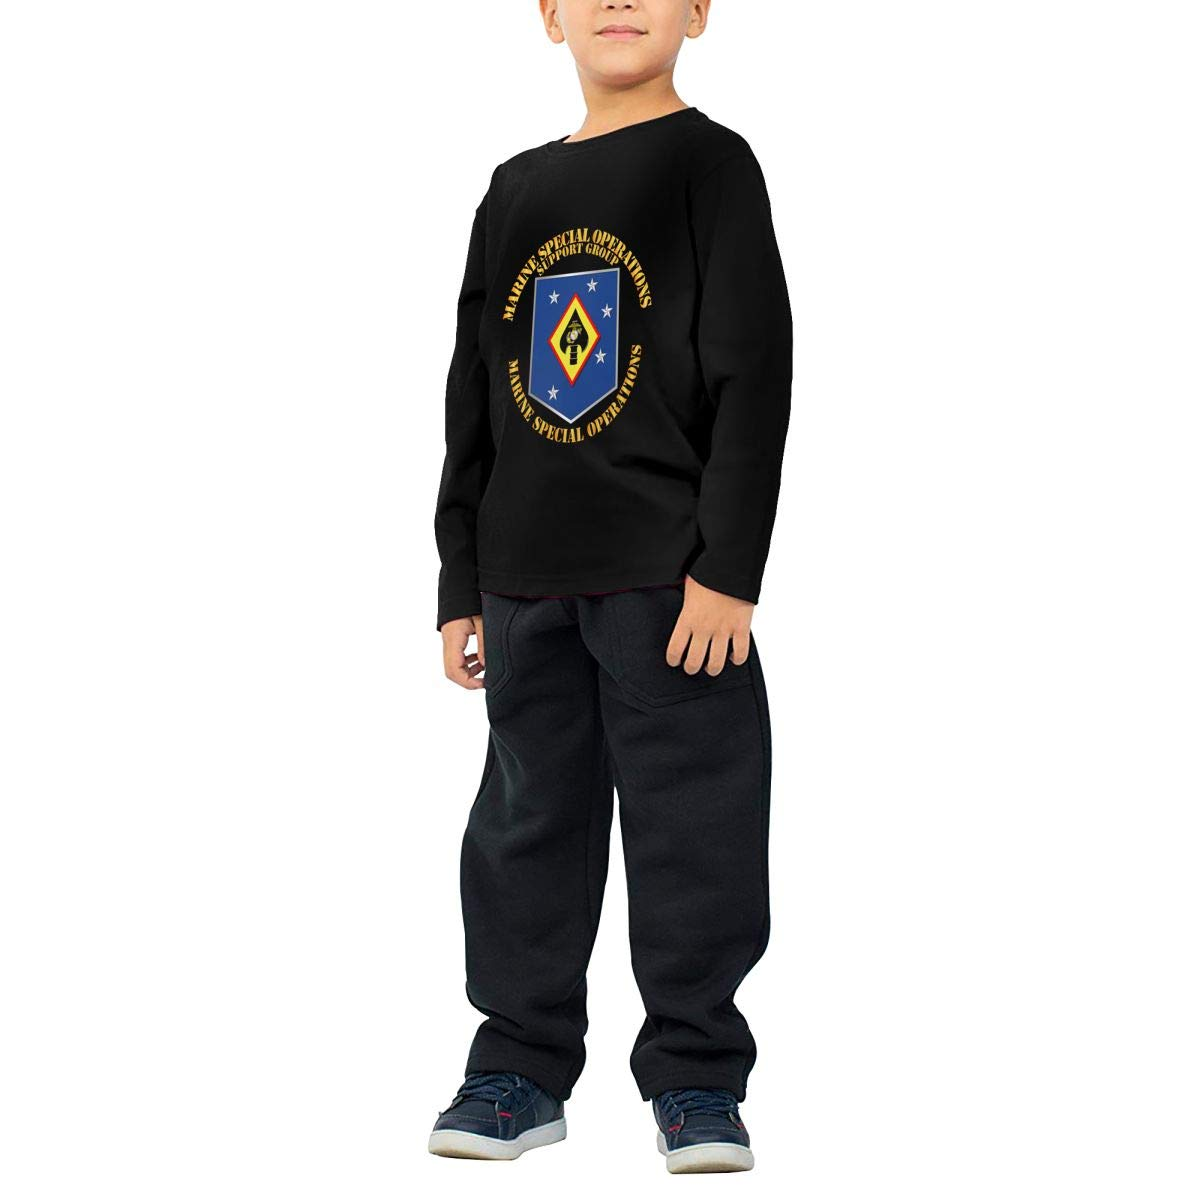 USMC Marine Special Operations Support Group Childrens Long Sleeve T-Shirt Boys Cotton Tee Tops